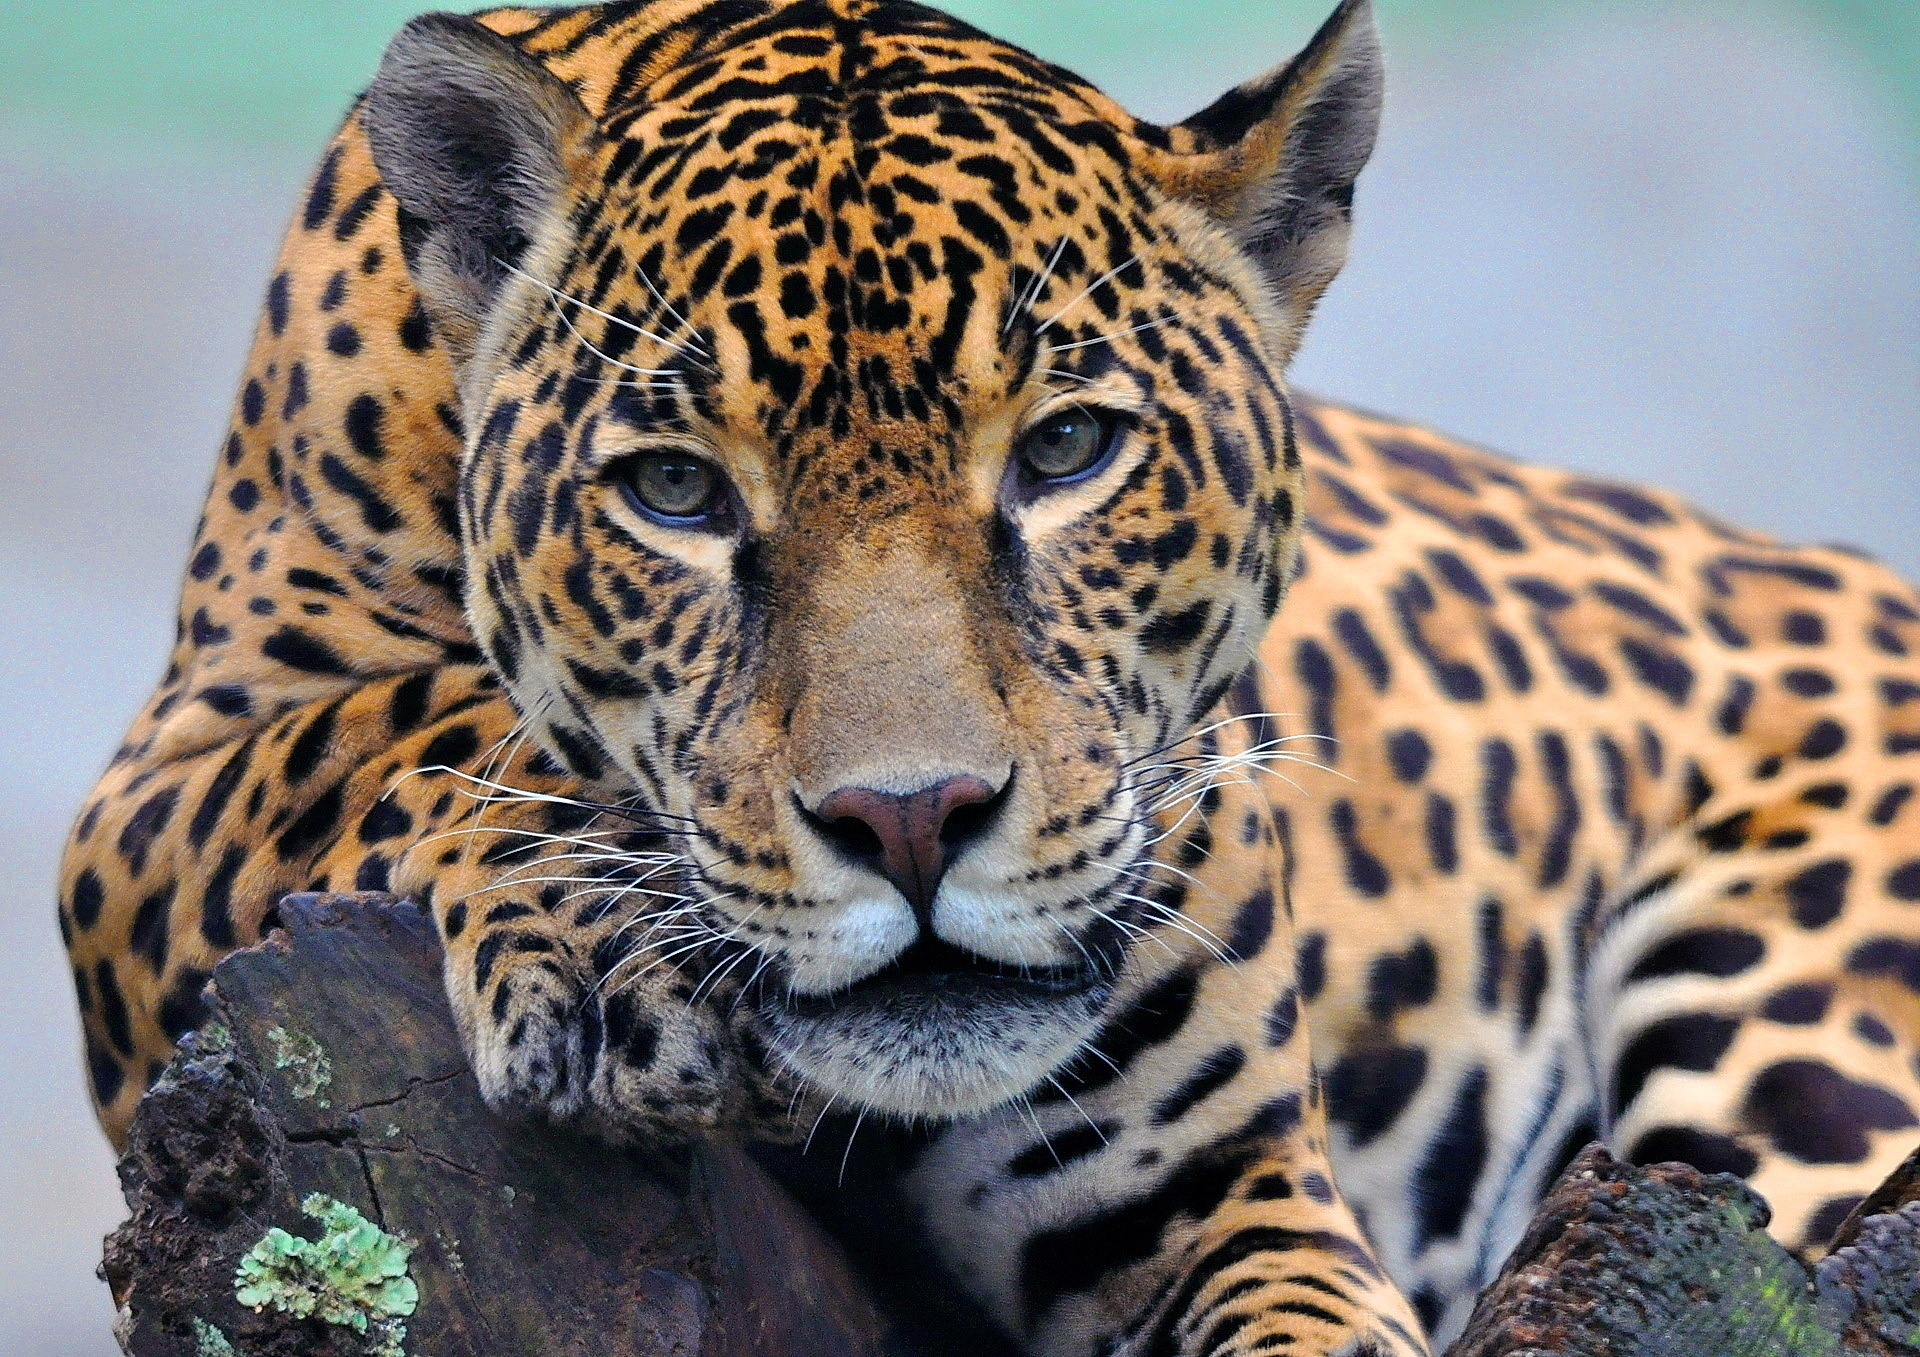 Jaguar hd wallpaper background image 1920x1357 id - Jaguar animal hd wallpapers ...